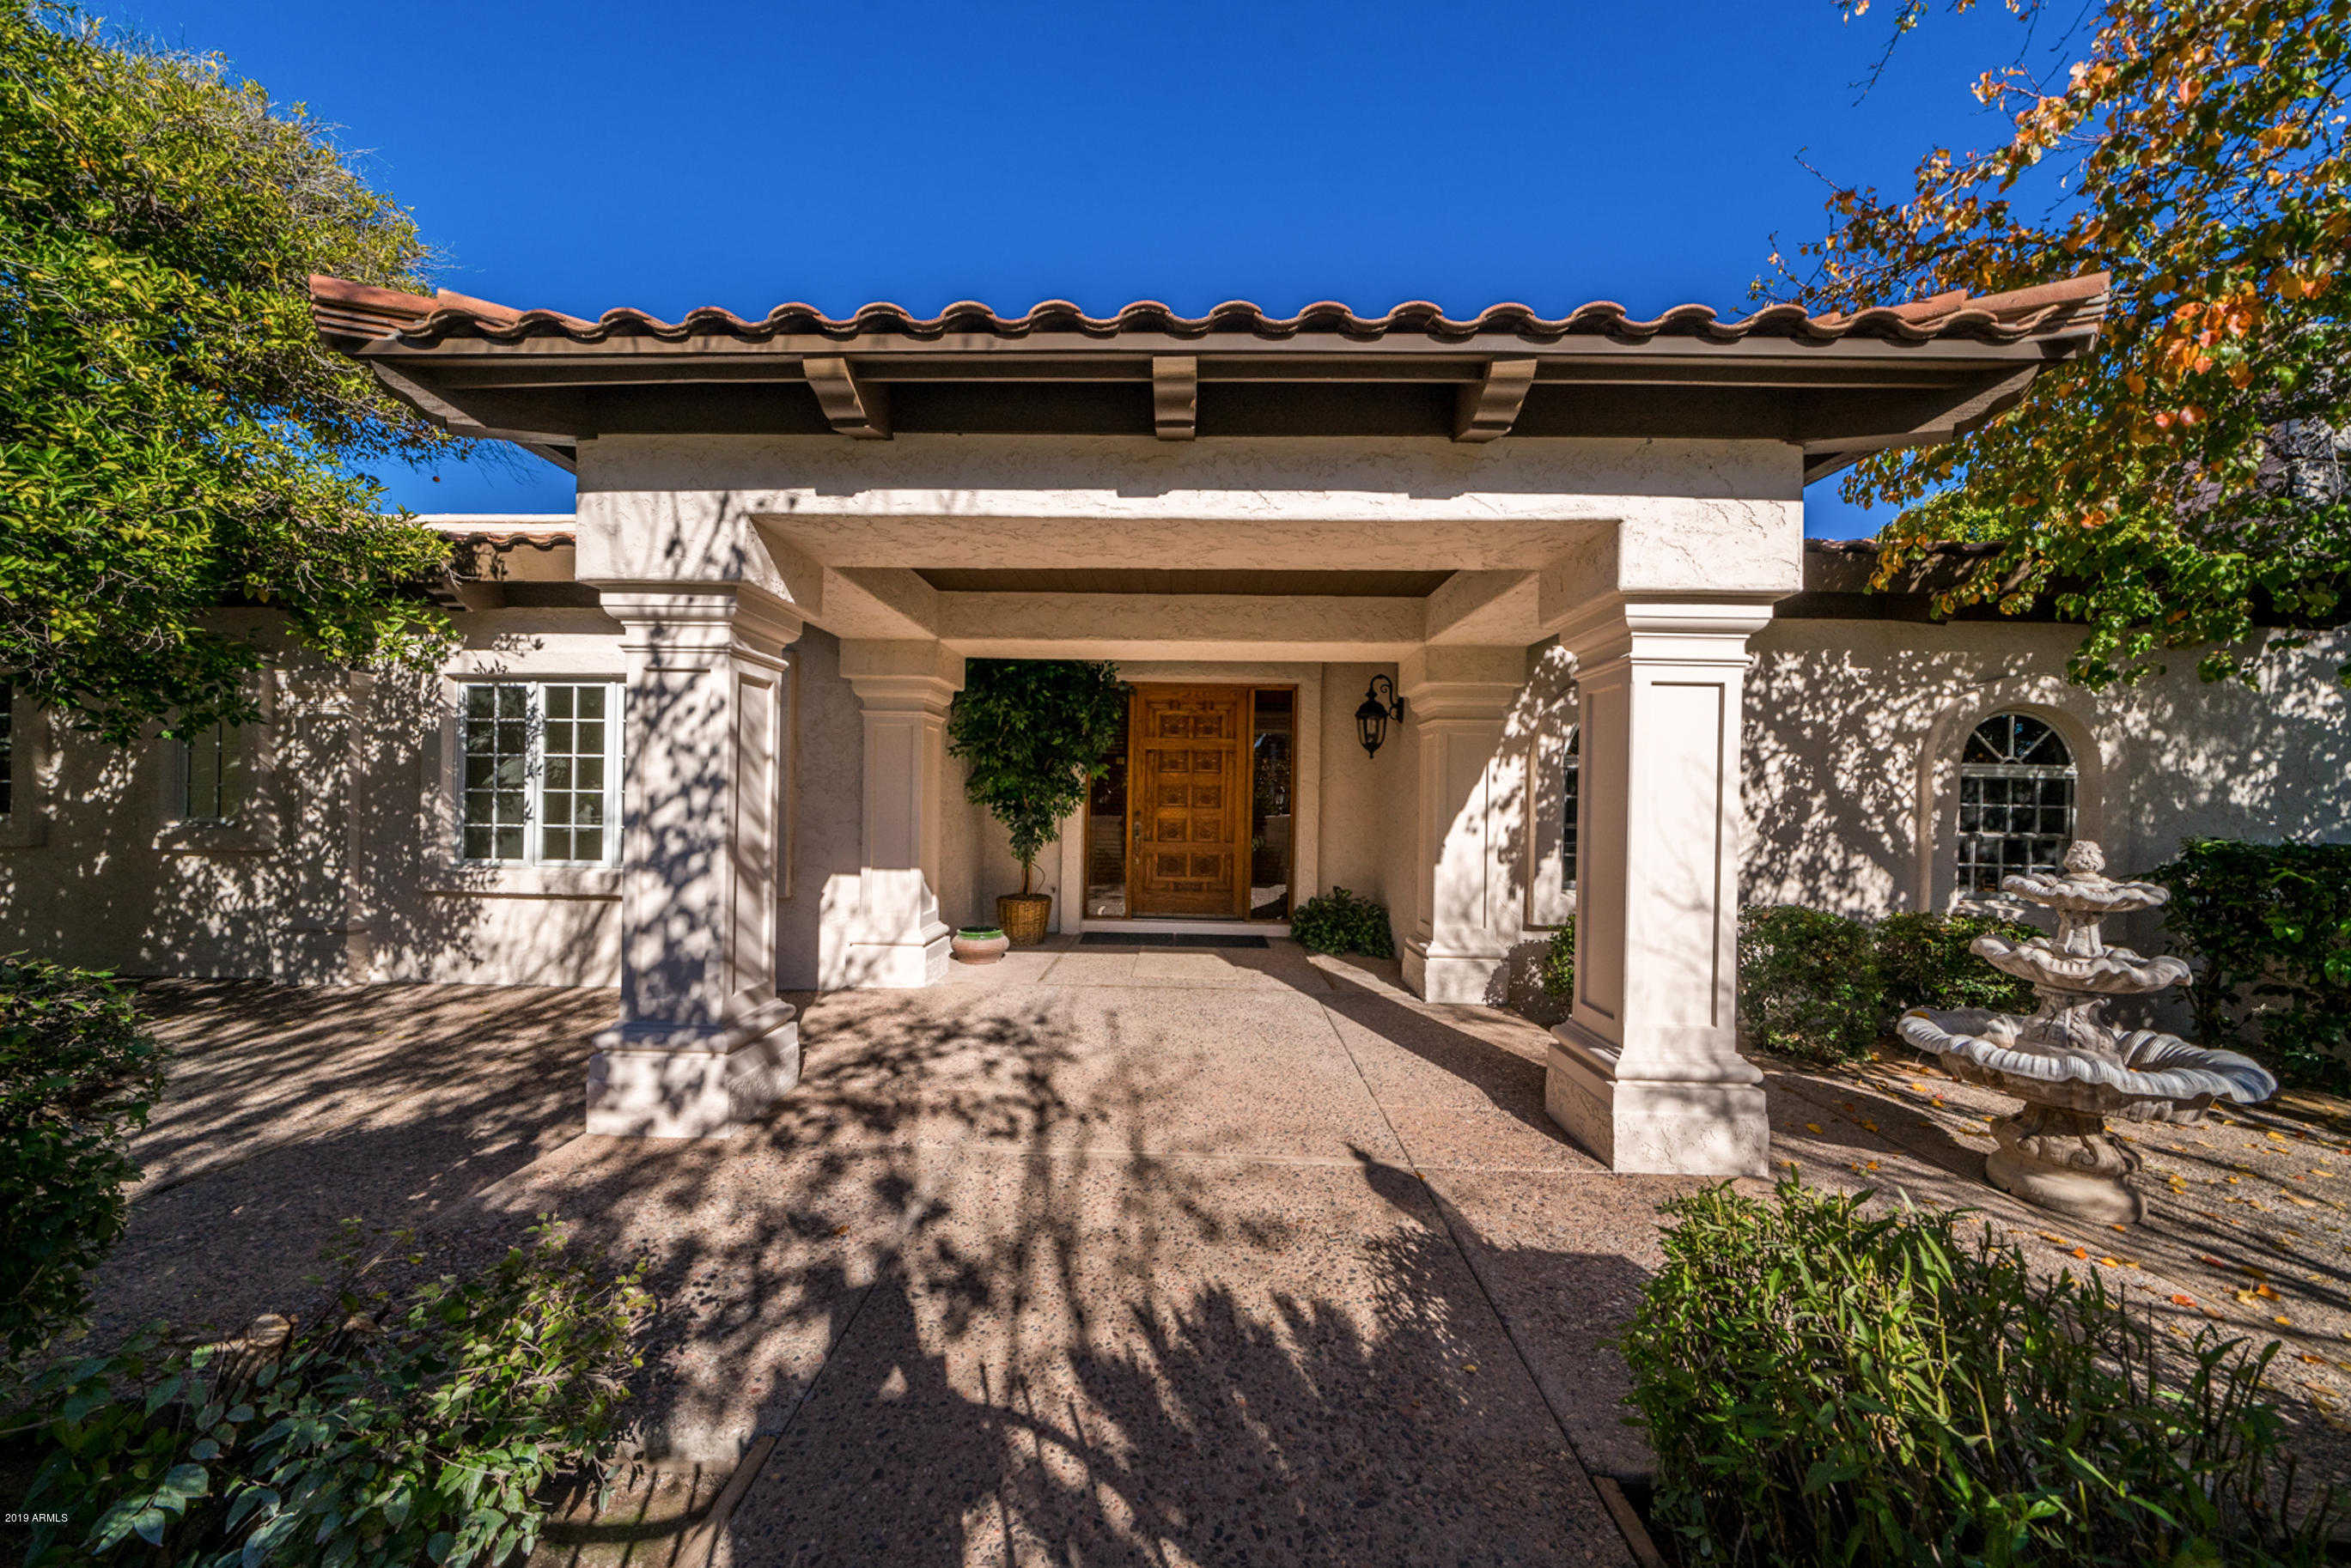 $895,000 - 5Br/5Ba - Home for Sale in Las Maderas Lot 1-33 Tr A-f, Mesa